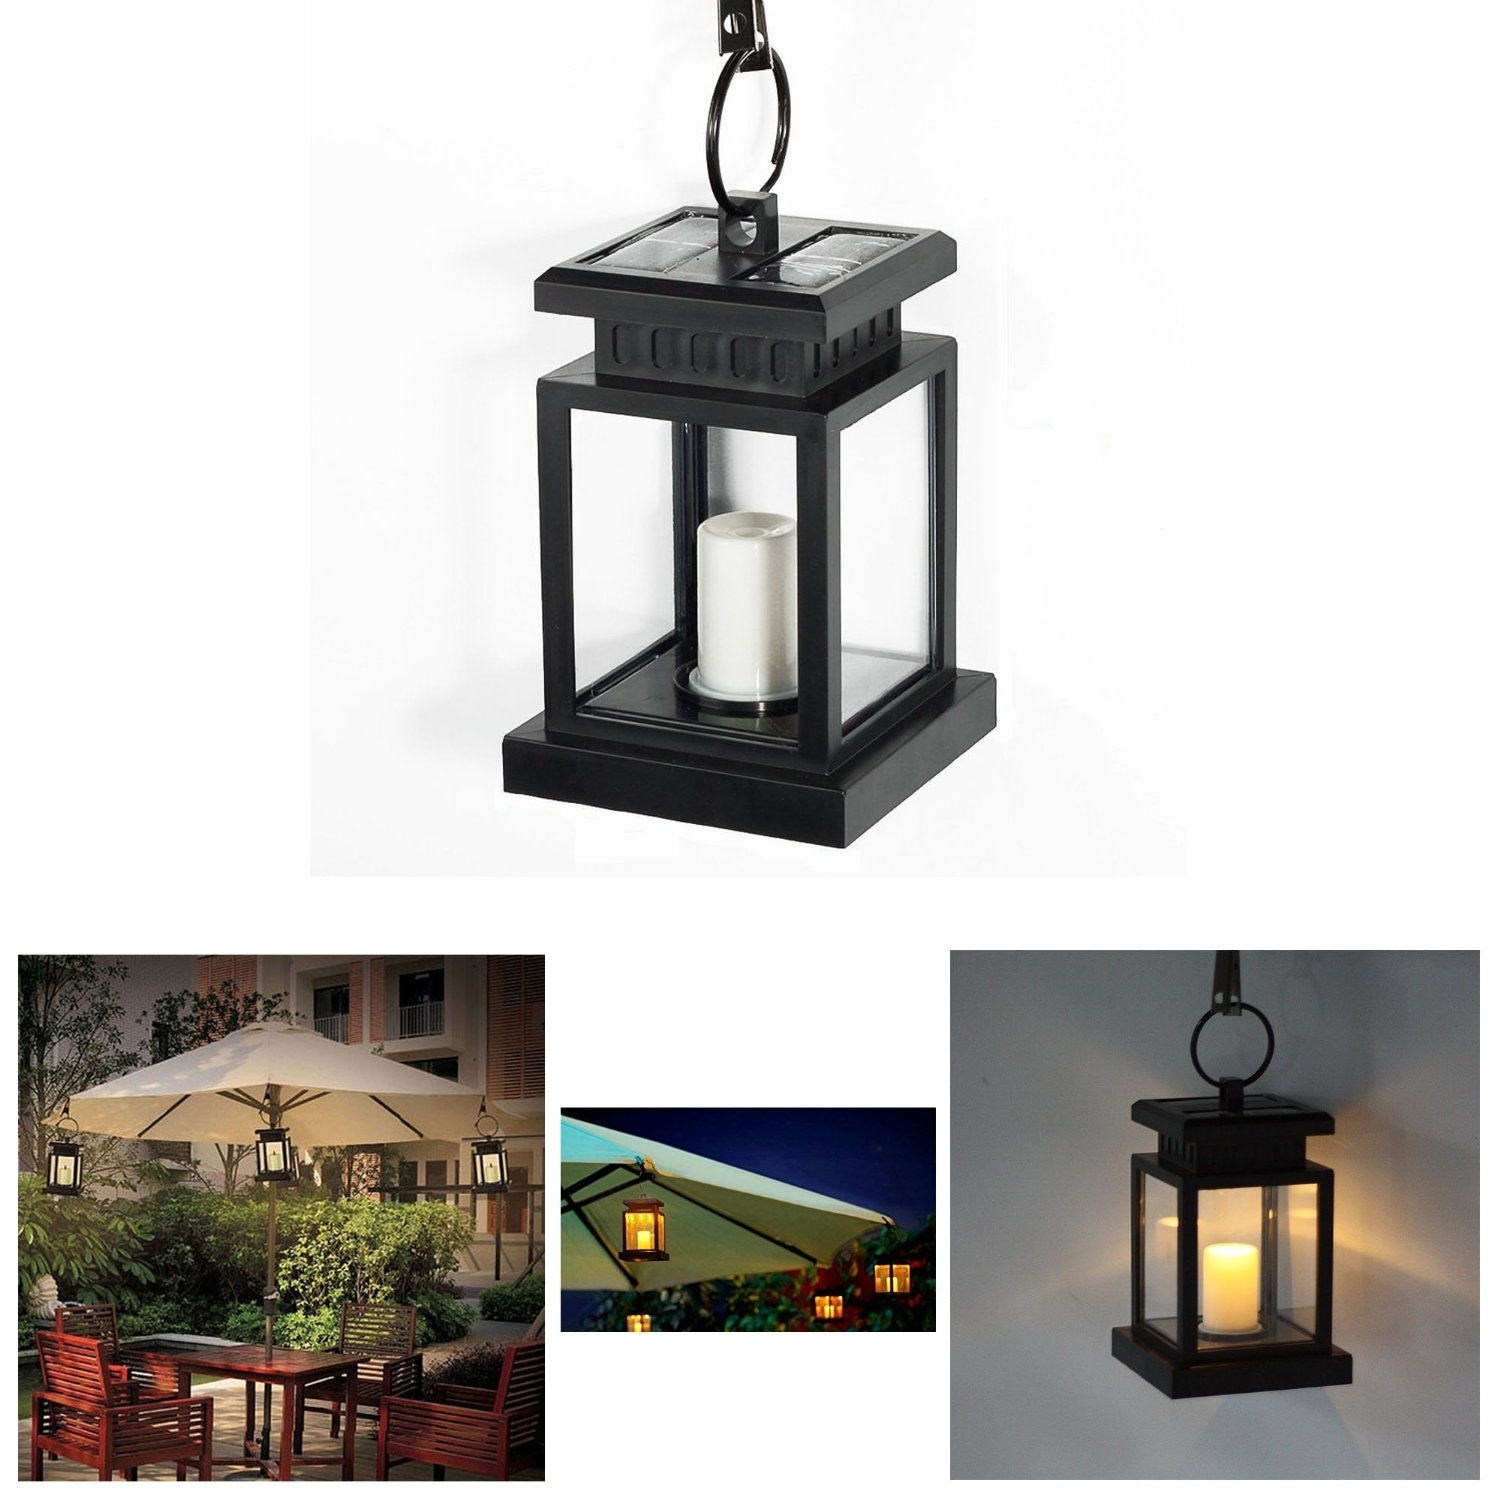 15 collection of solar powered outdoor hanging lanterns. Black Bedroom Furniture Sets. Home Design Ideas